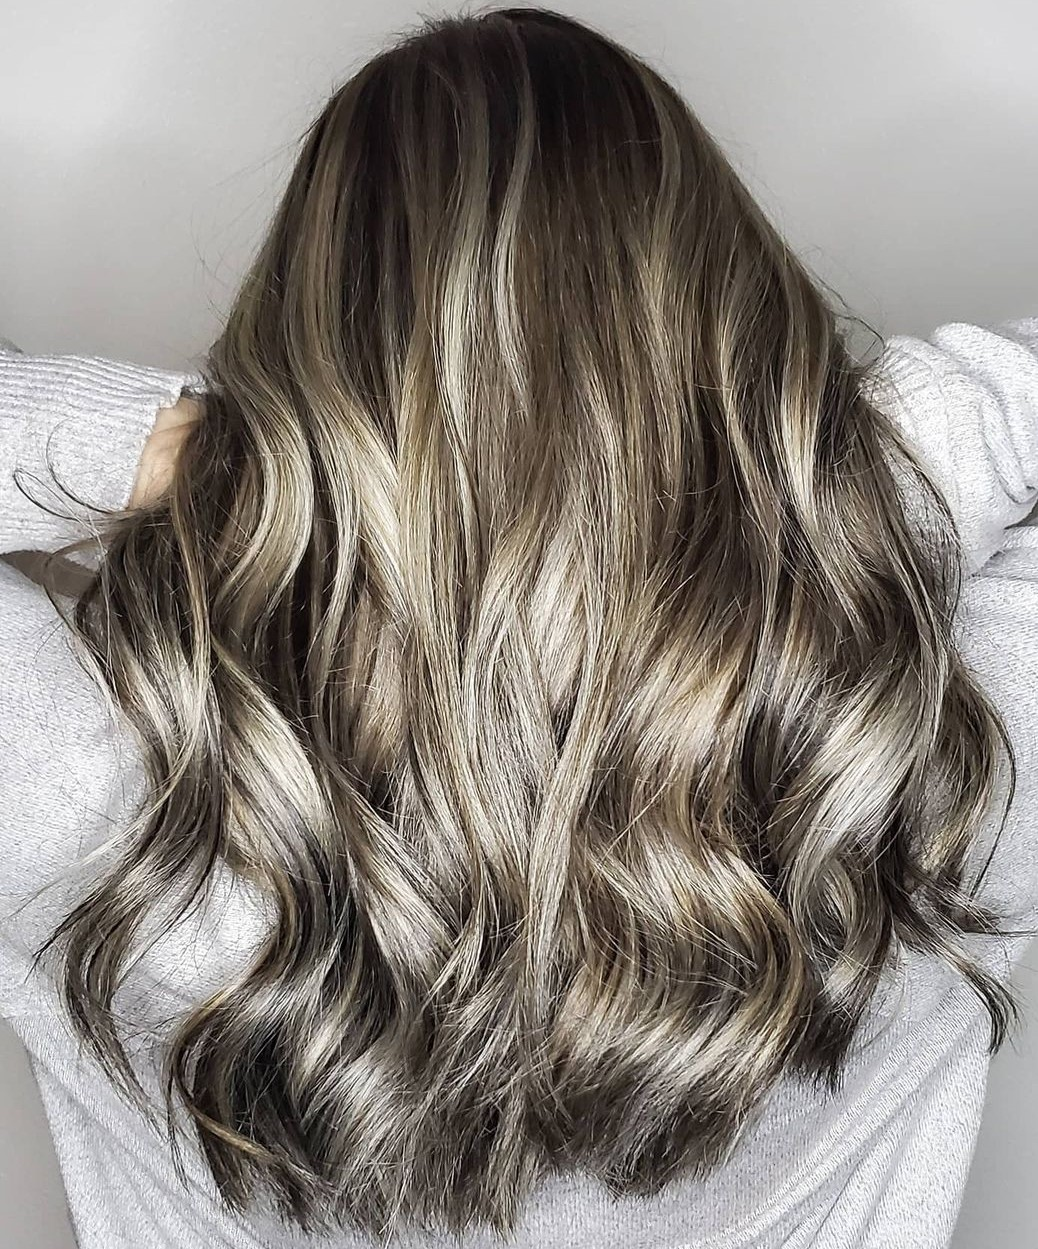 High-Shine Gold and Silver Highlights